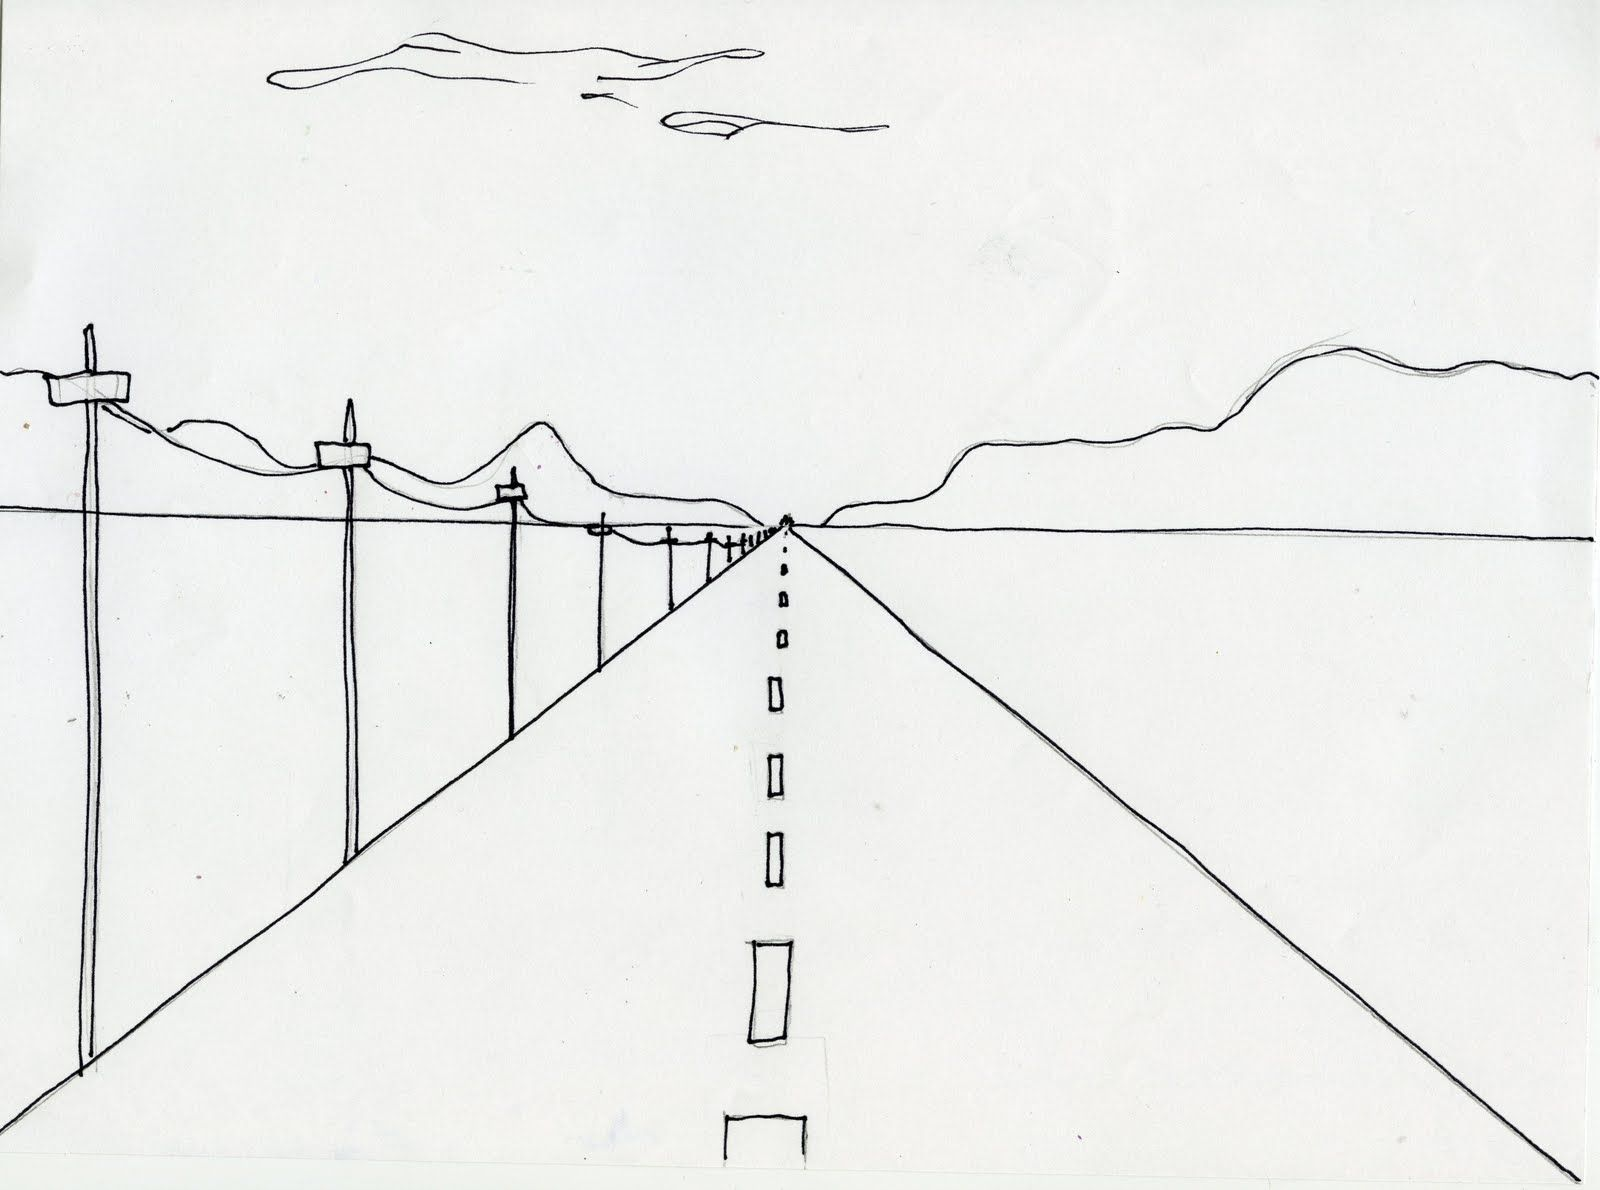 Horizon Line Art Definition : A simple illustration of one point perspective and the